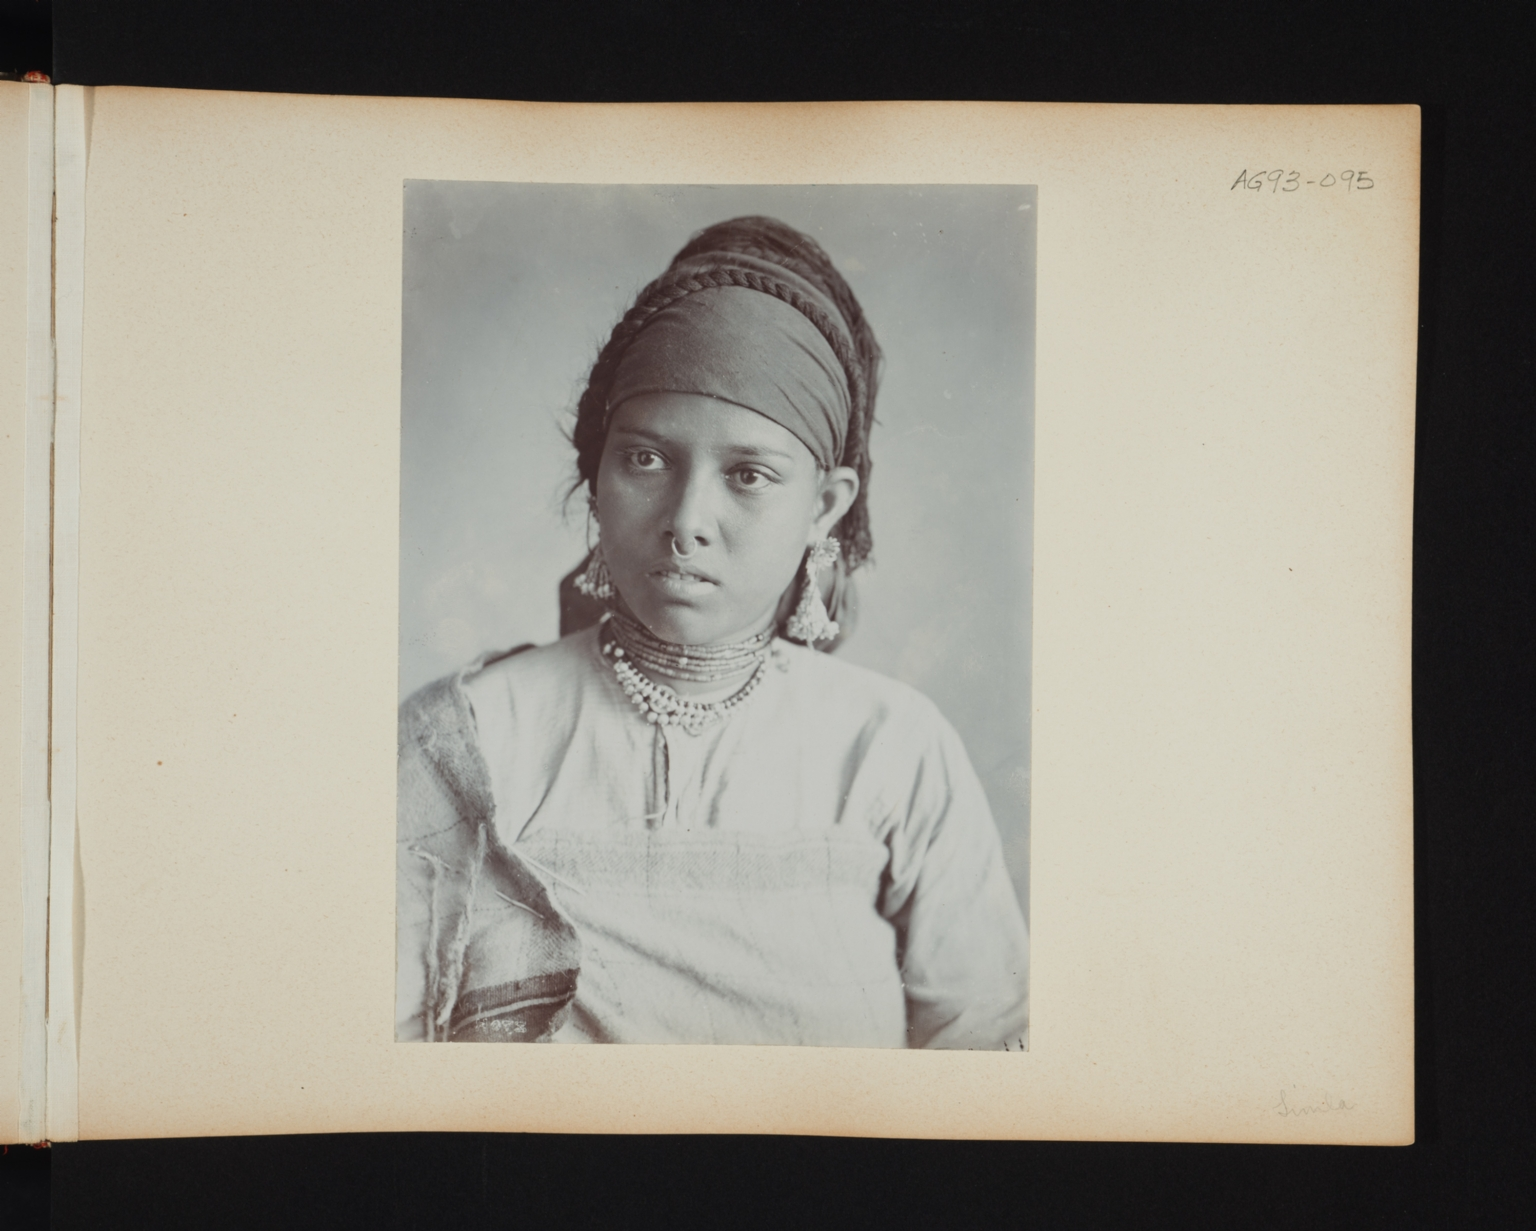 Portrait of a young woman with a nose ring in Simla, India.